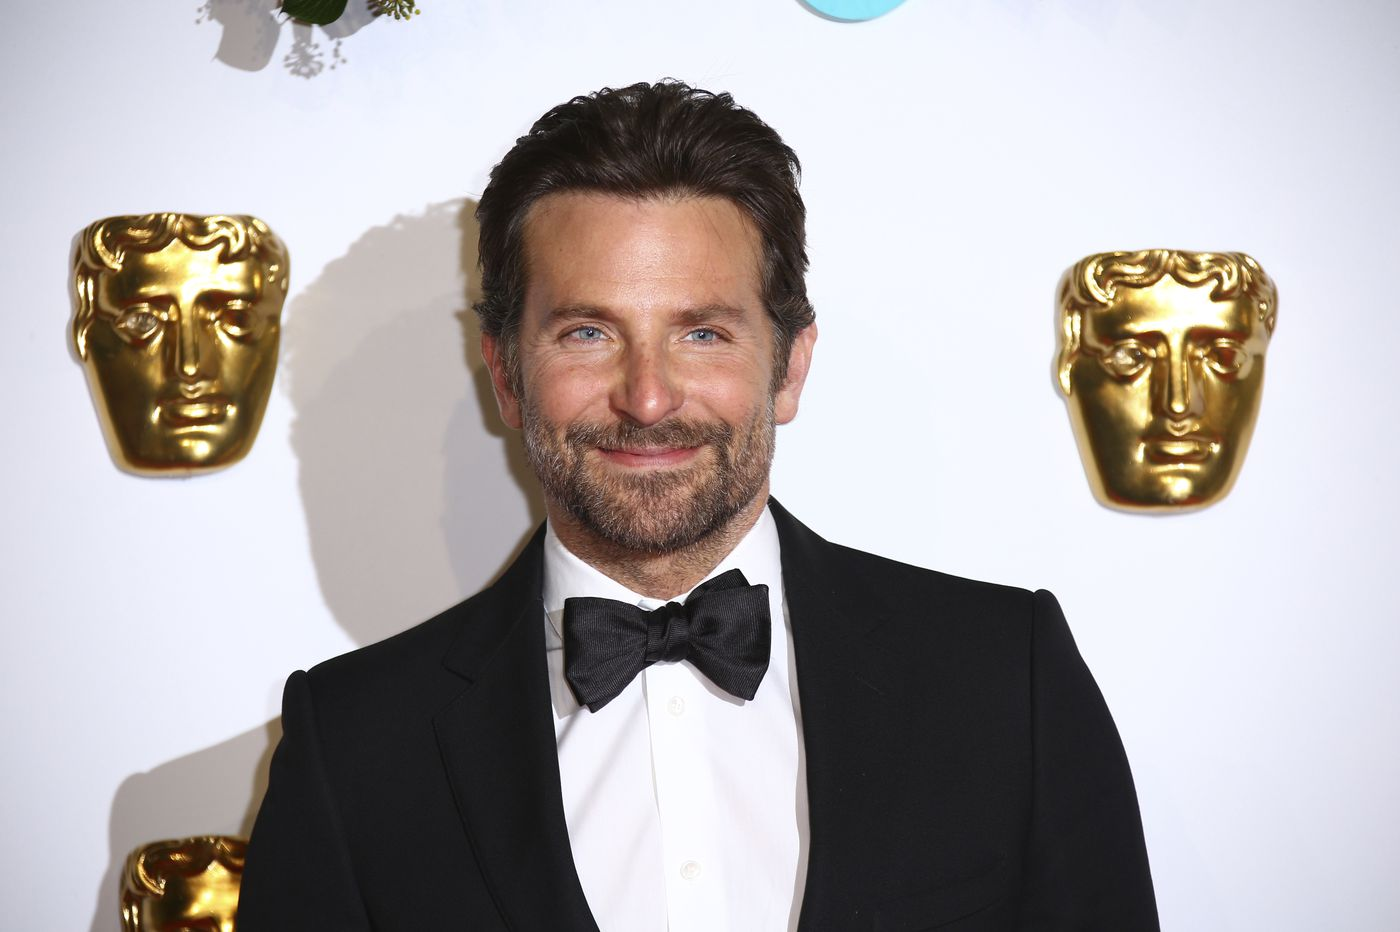 Bradley Cooper will perform with the Philadelphia Orchestra. Here's why.